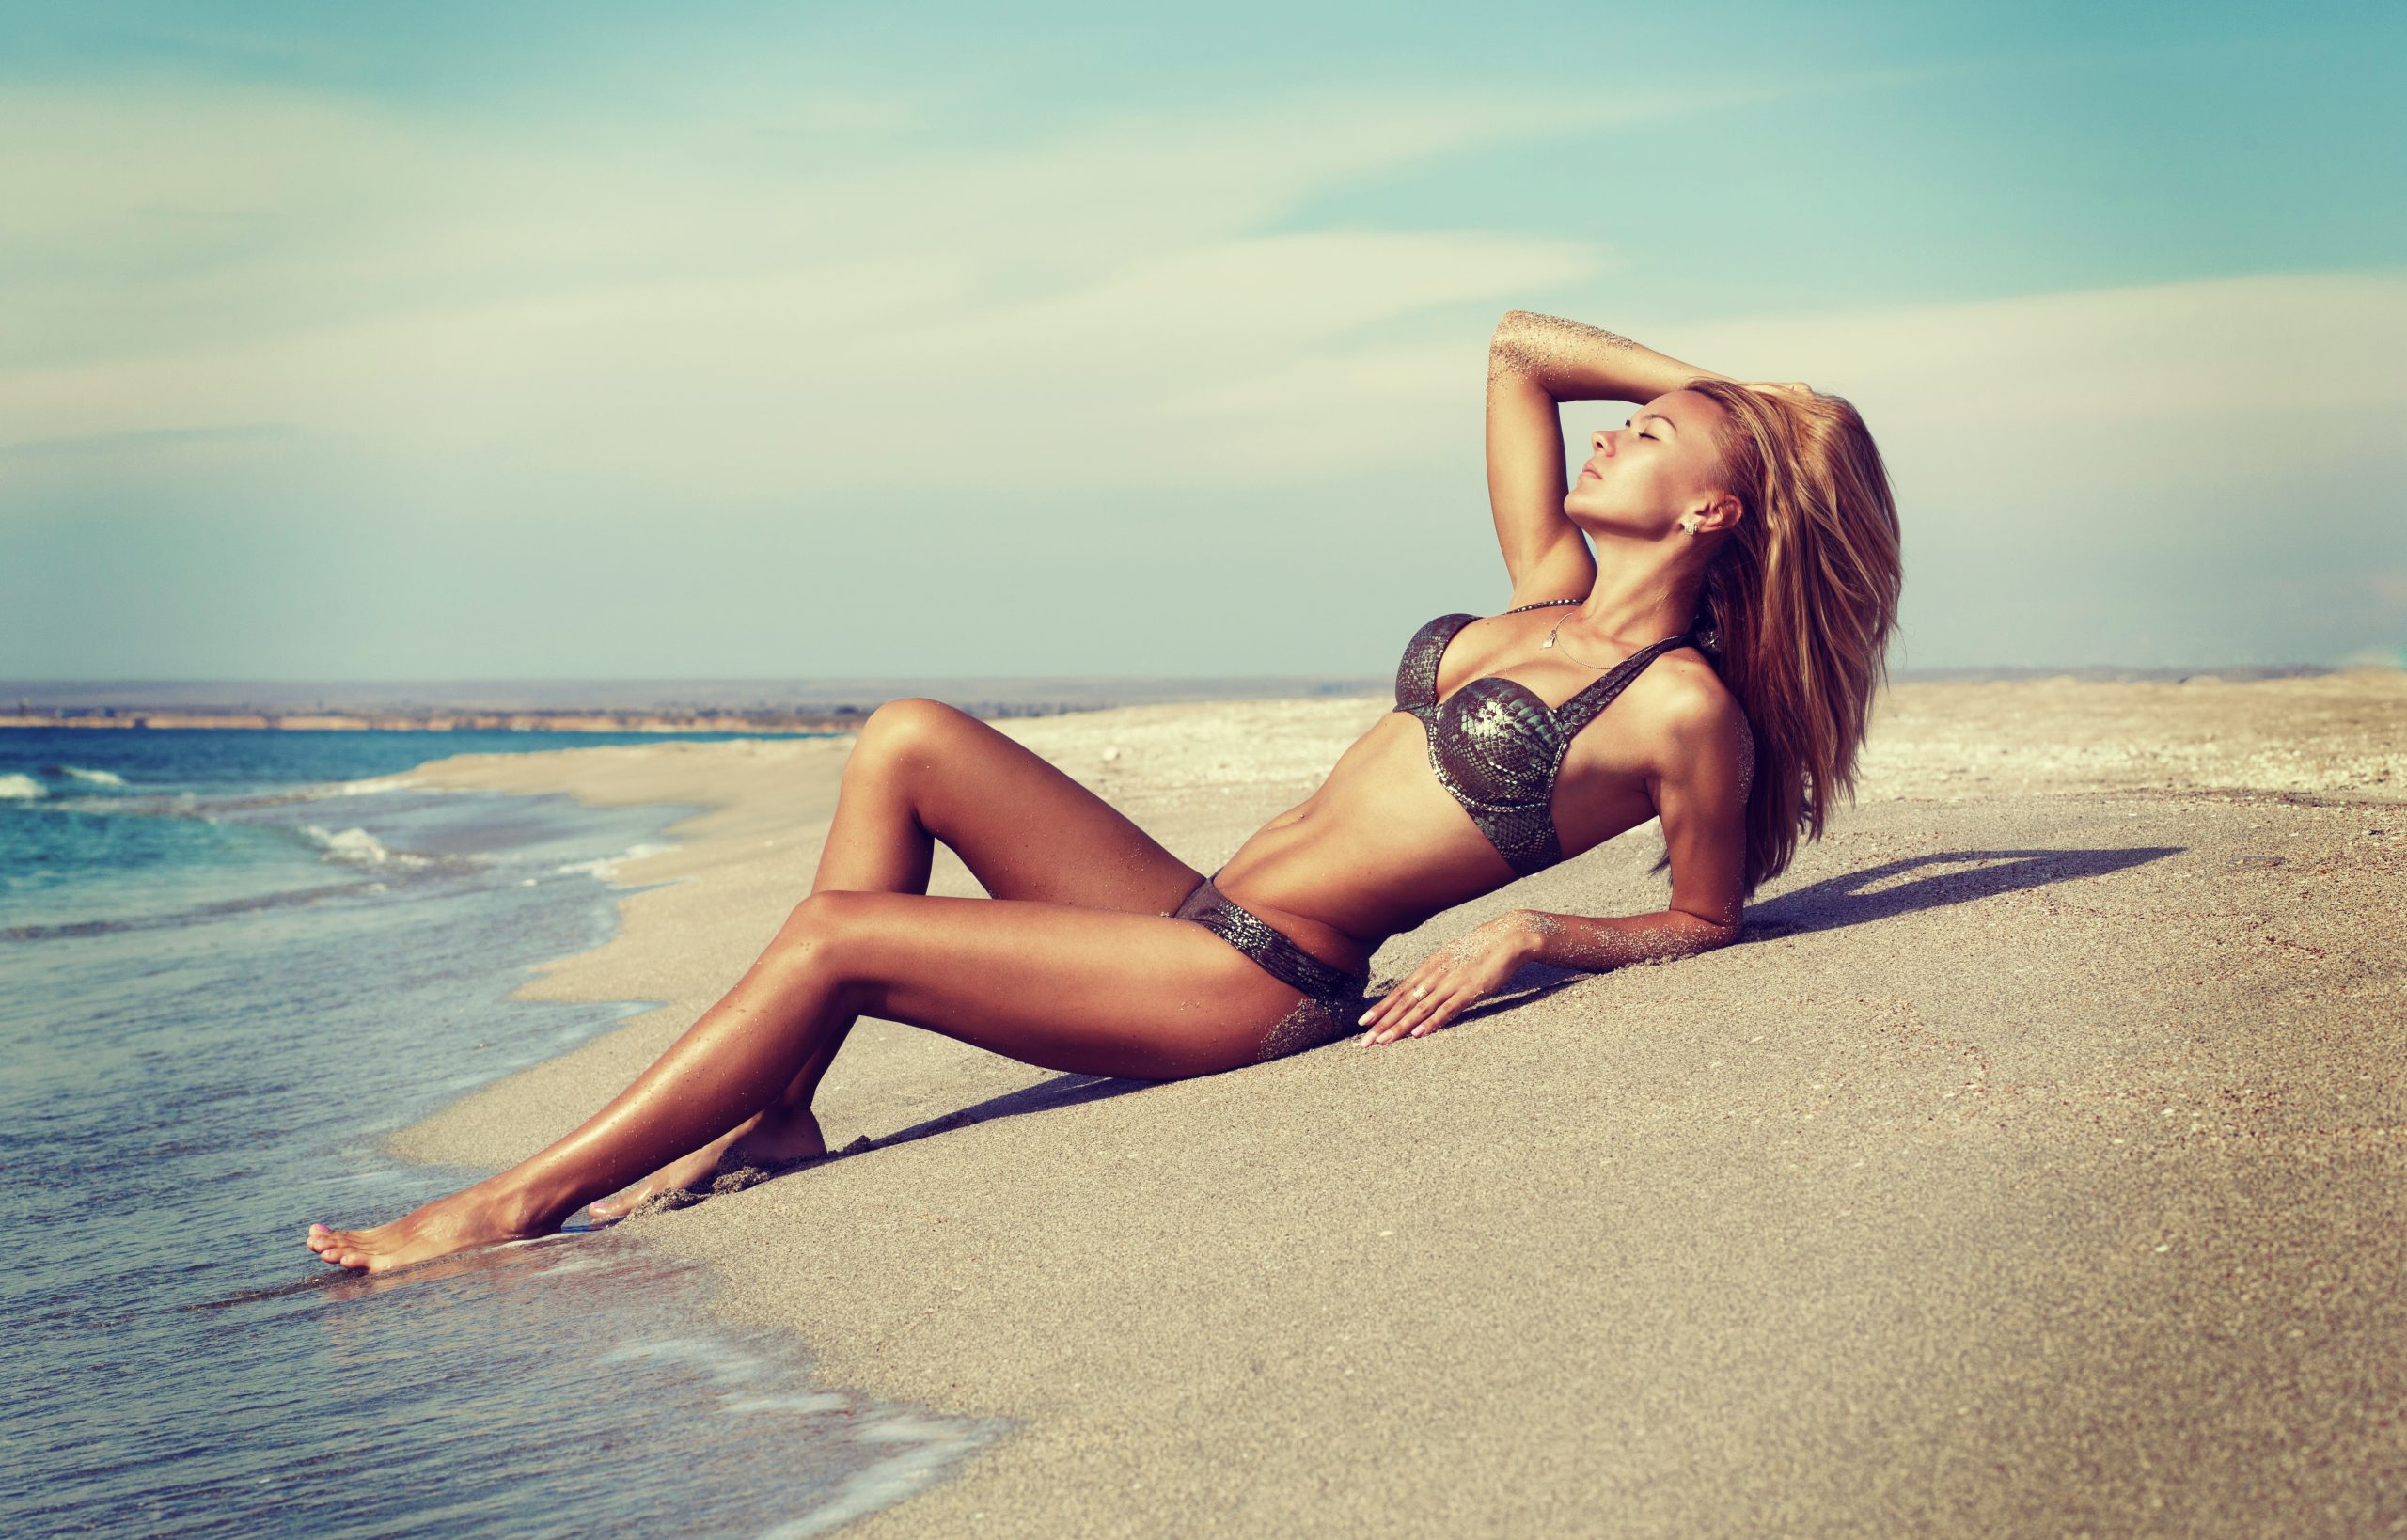 7 Common Questions About CoolSculpting